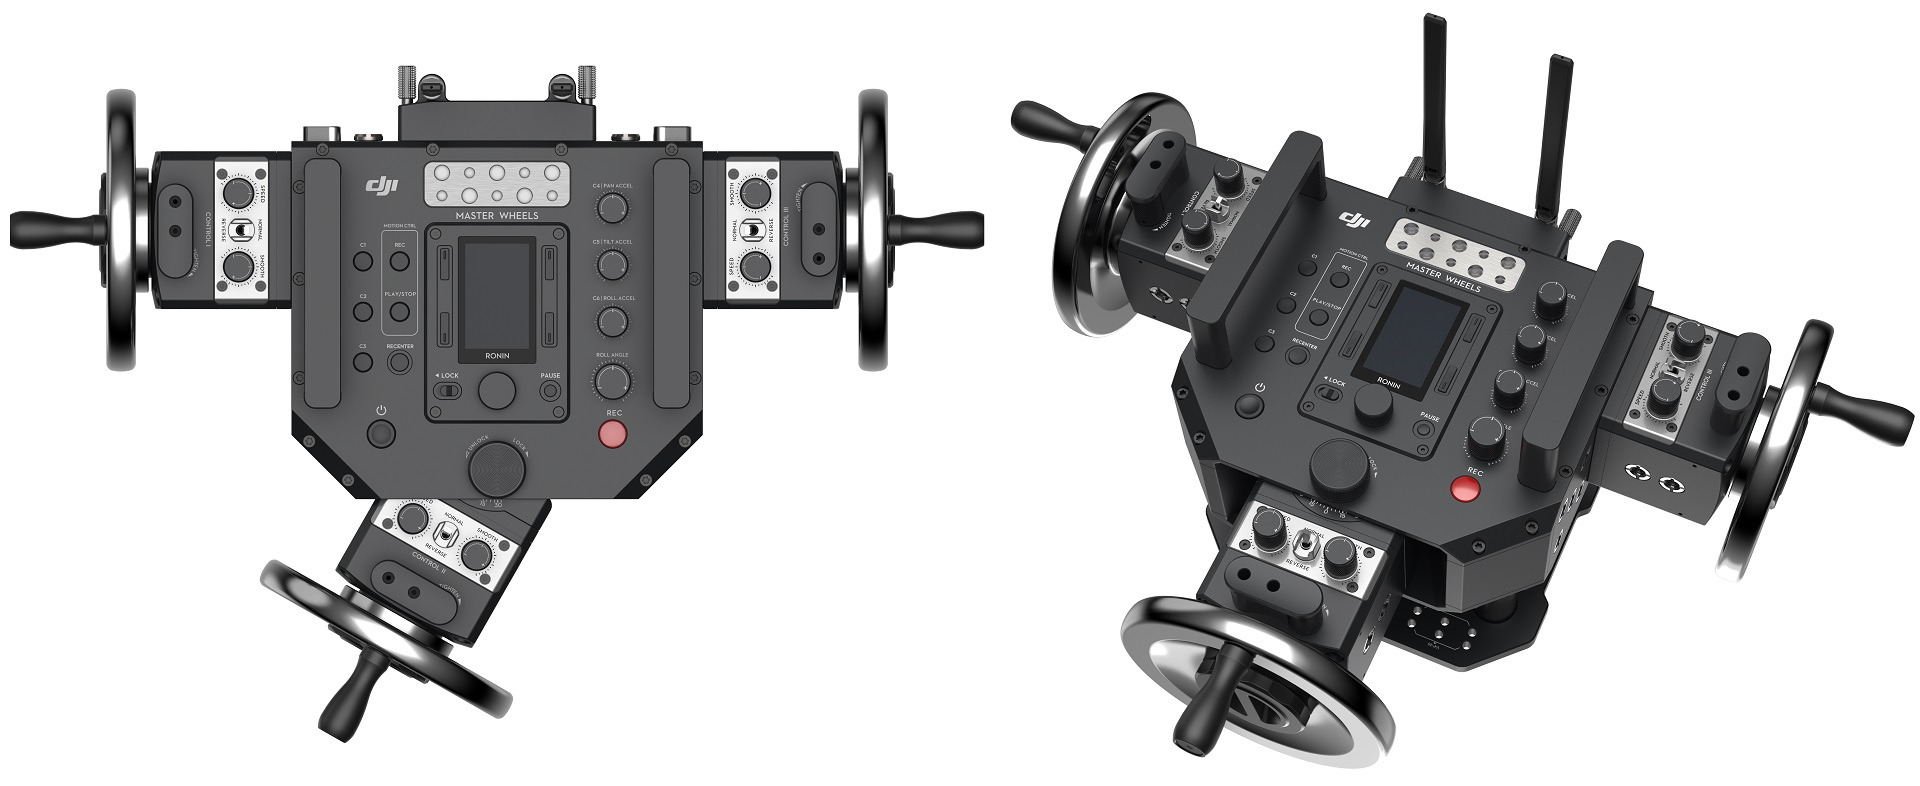 DJI Master Wheels and Force Pro - Remote Gimbal Control | cinema5D